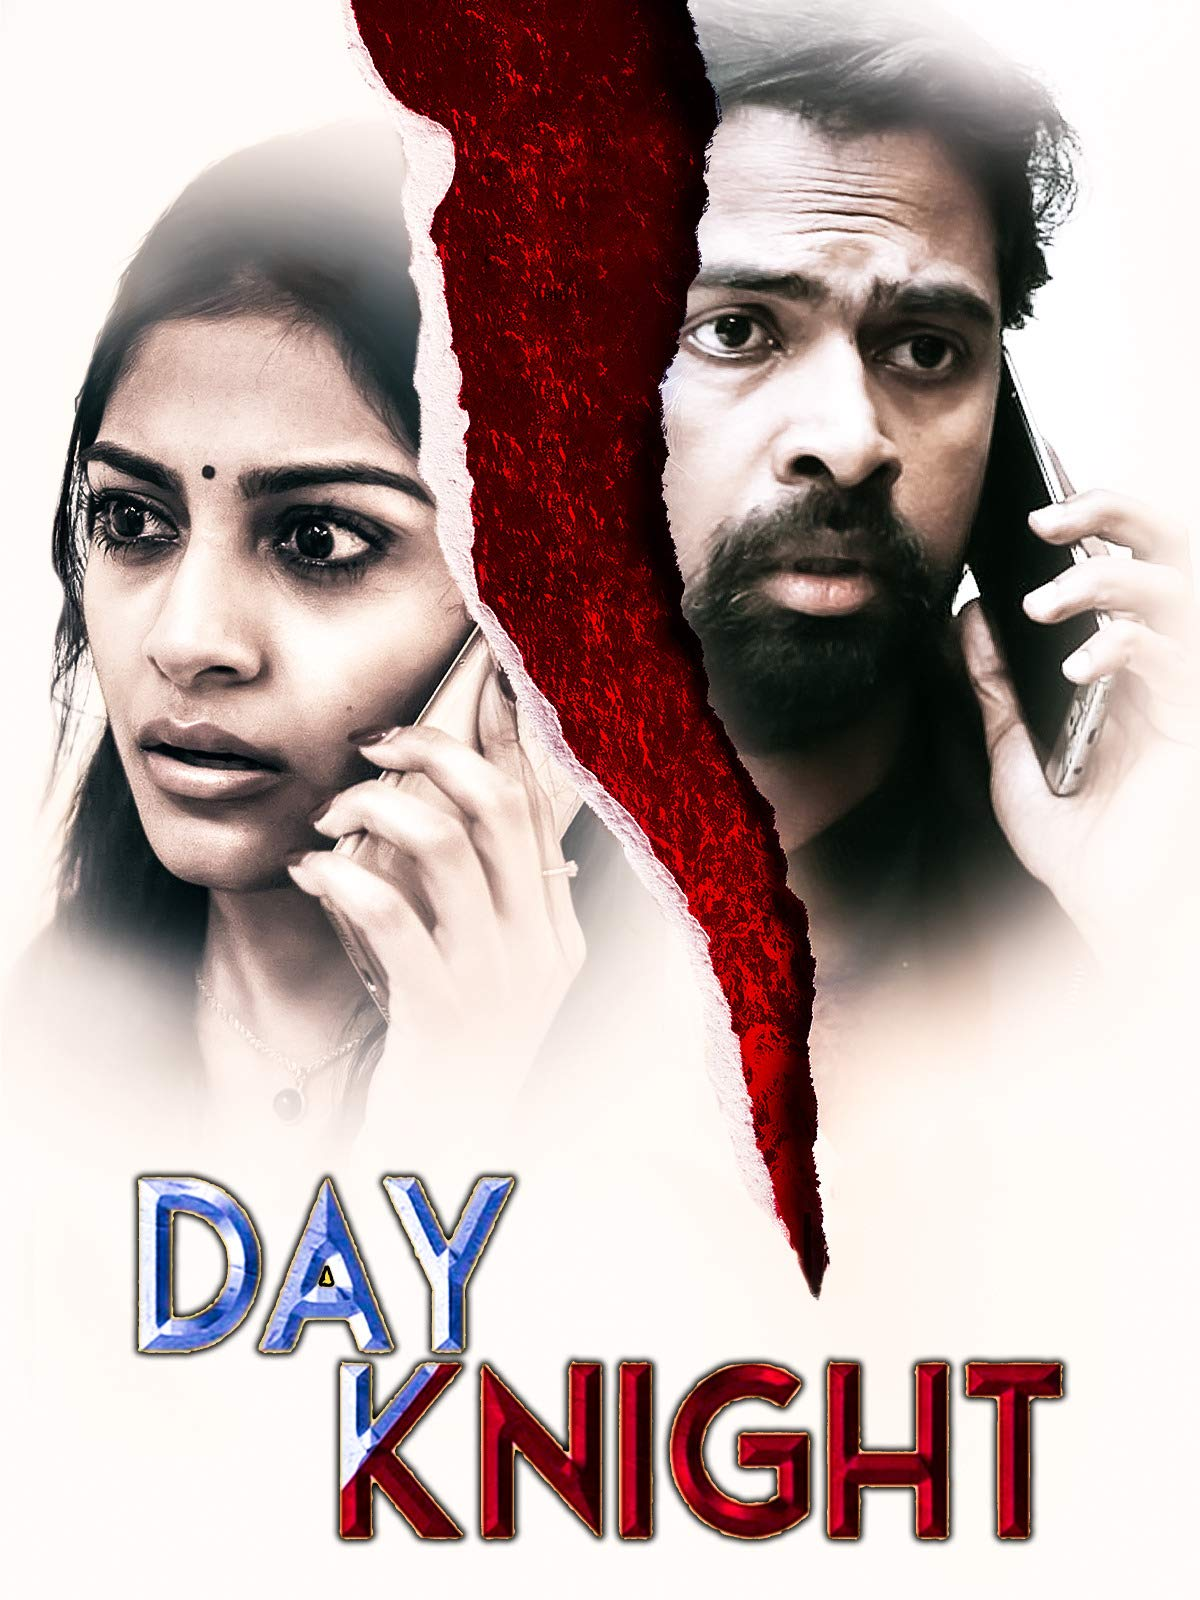 Day knight (2020) Hindi Dubbed 720p HDRip Esubs DL